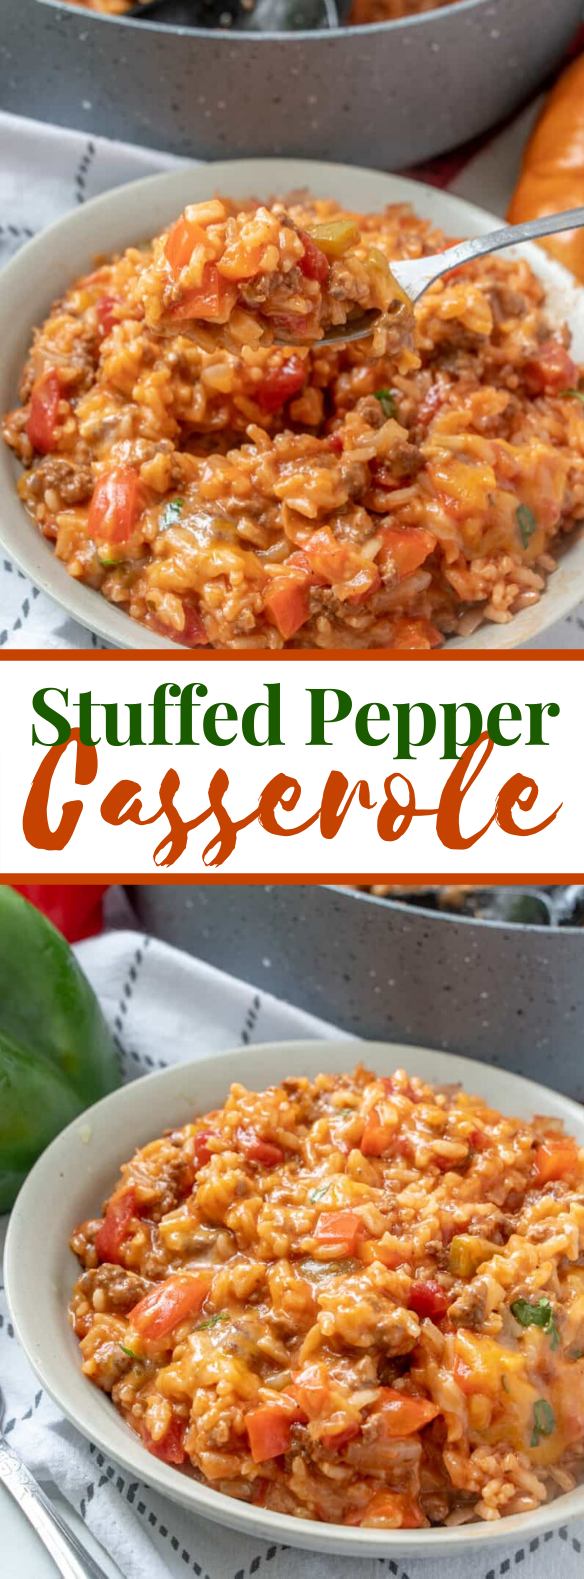 STUFFED PEPPER CASSEROLE #dinner #glutenfree